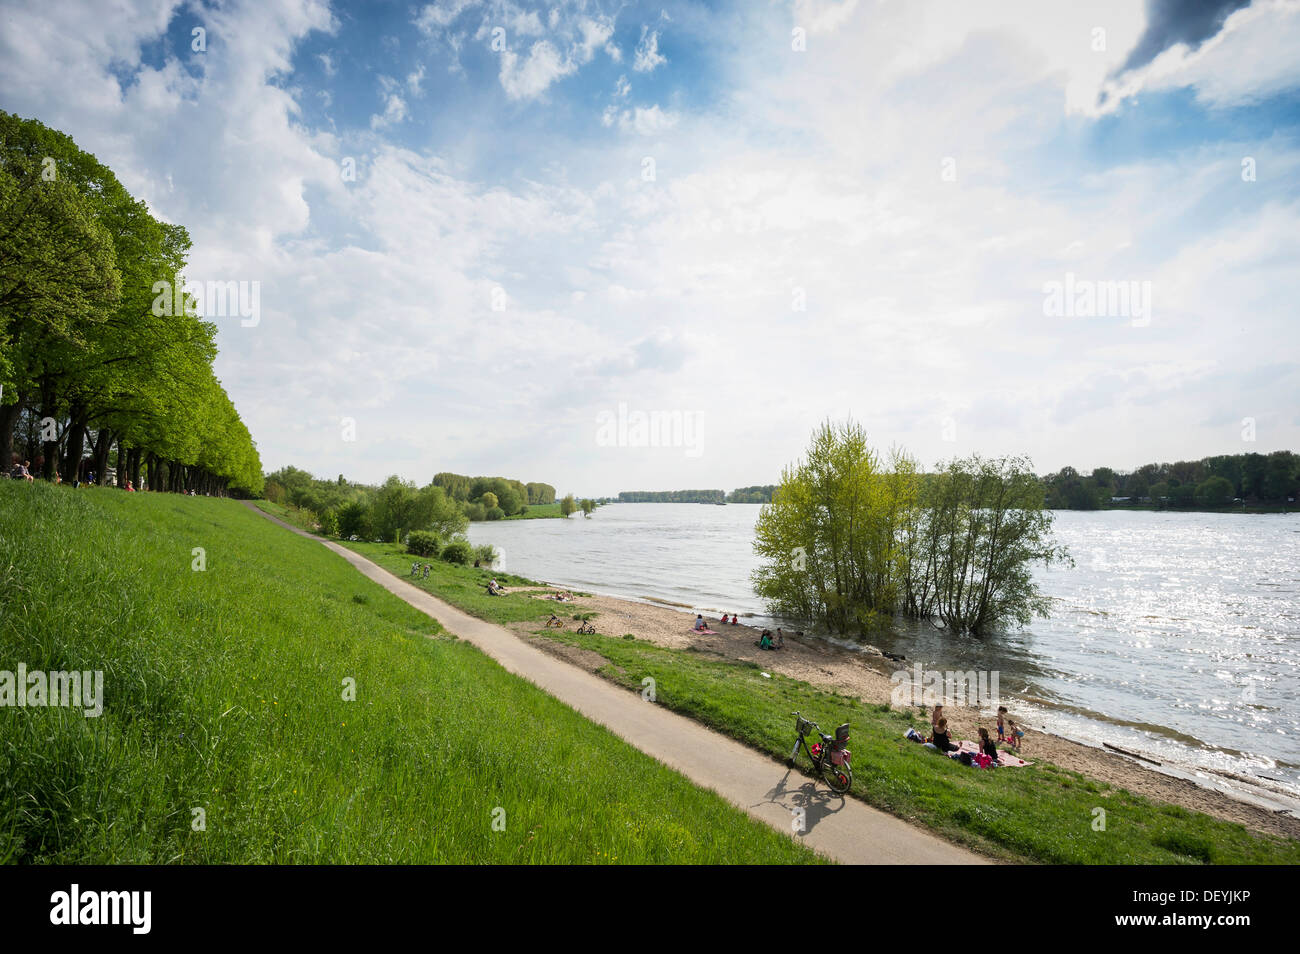 Rhine River shore of Schloss Benrath Palace, Benrath, Düsseldorf, Rhineland, North Rhine-Westphalia, Germany Stock Photo